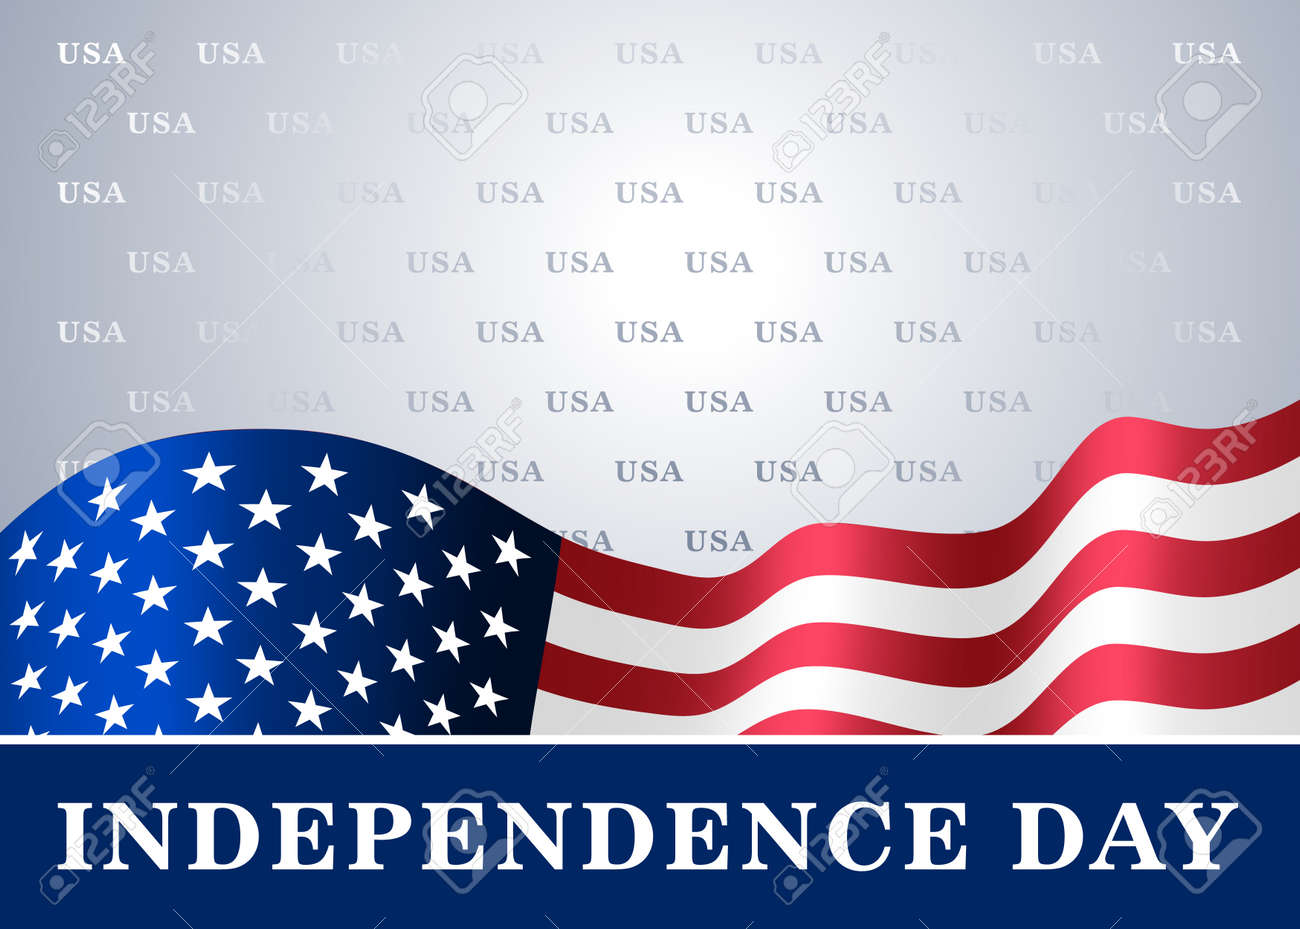 independence day usa background with flag symbol of 4th july